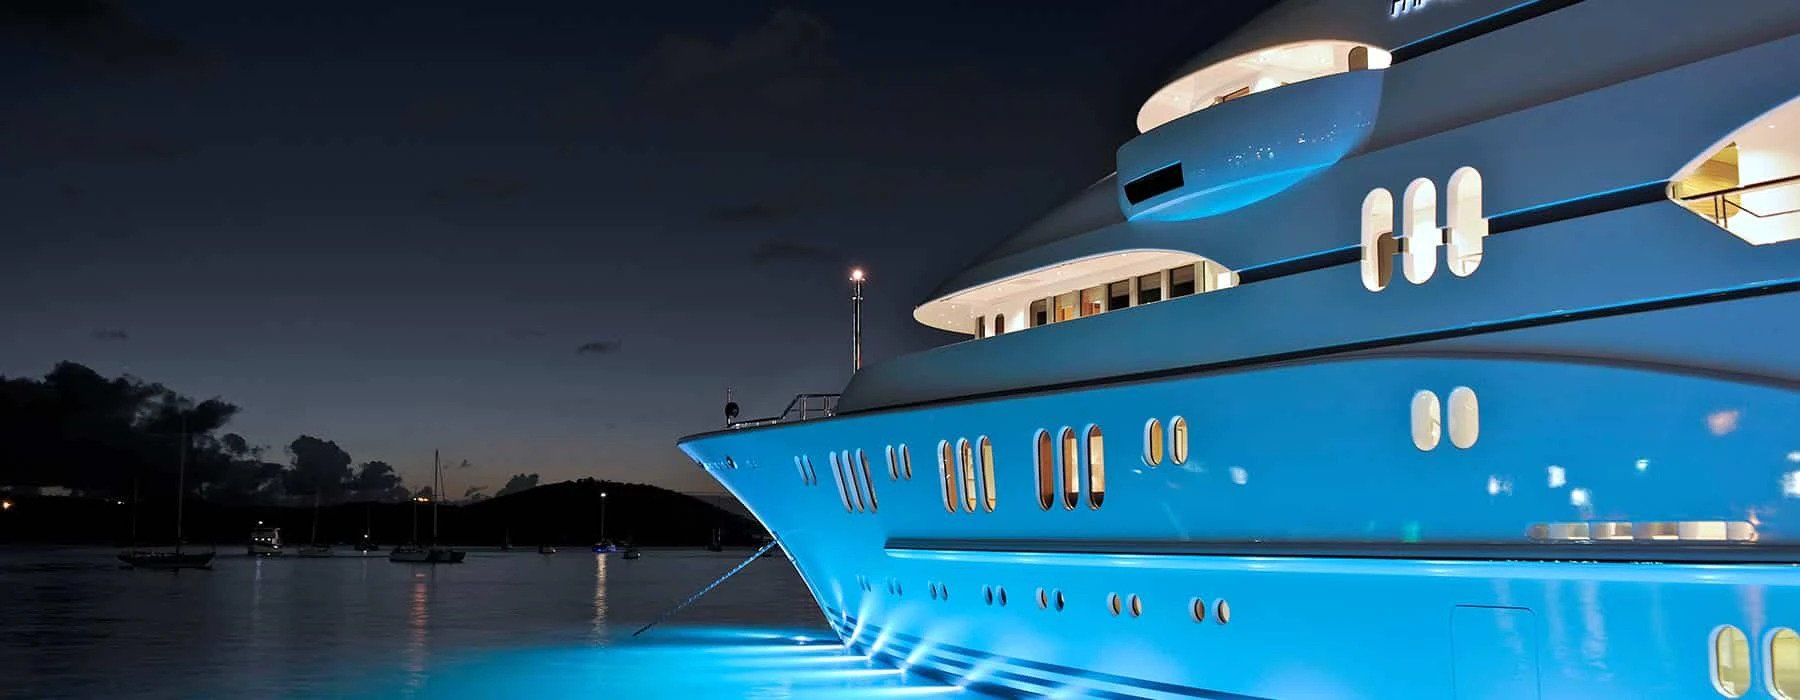 Yacht about us mlkyachts yacht broker superyacht broker andyachts charter a yacht - About us mlkyachts yacht hire and superyacht hire